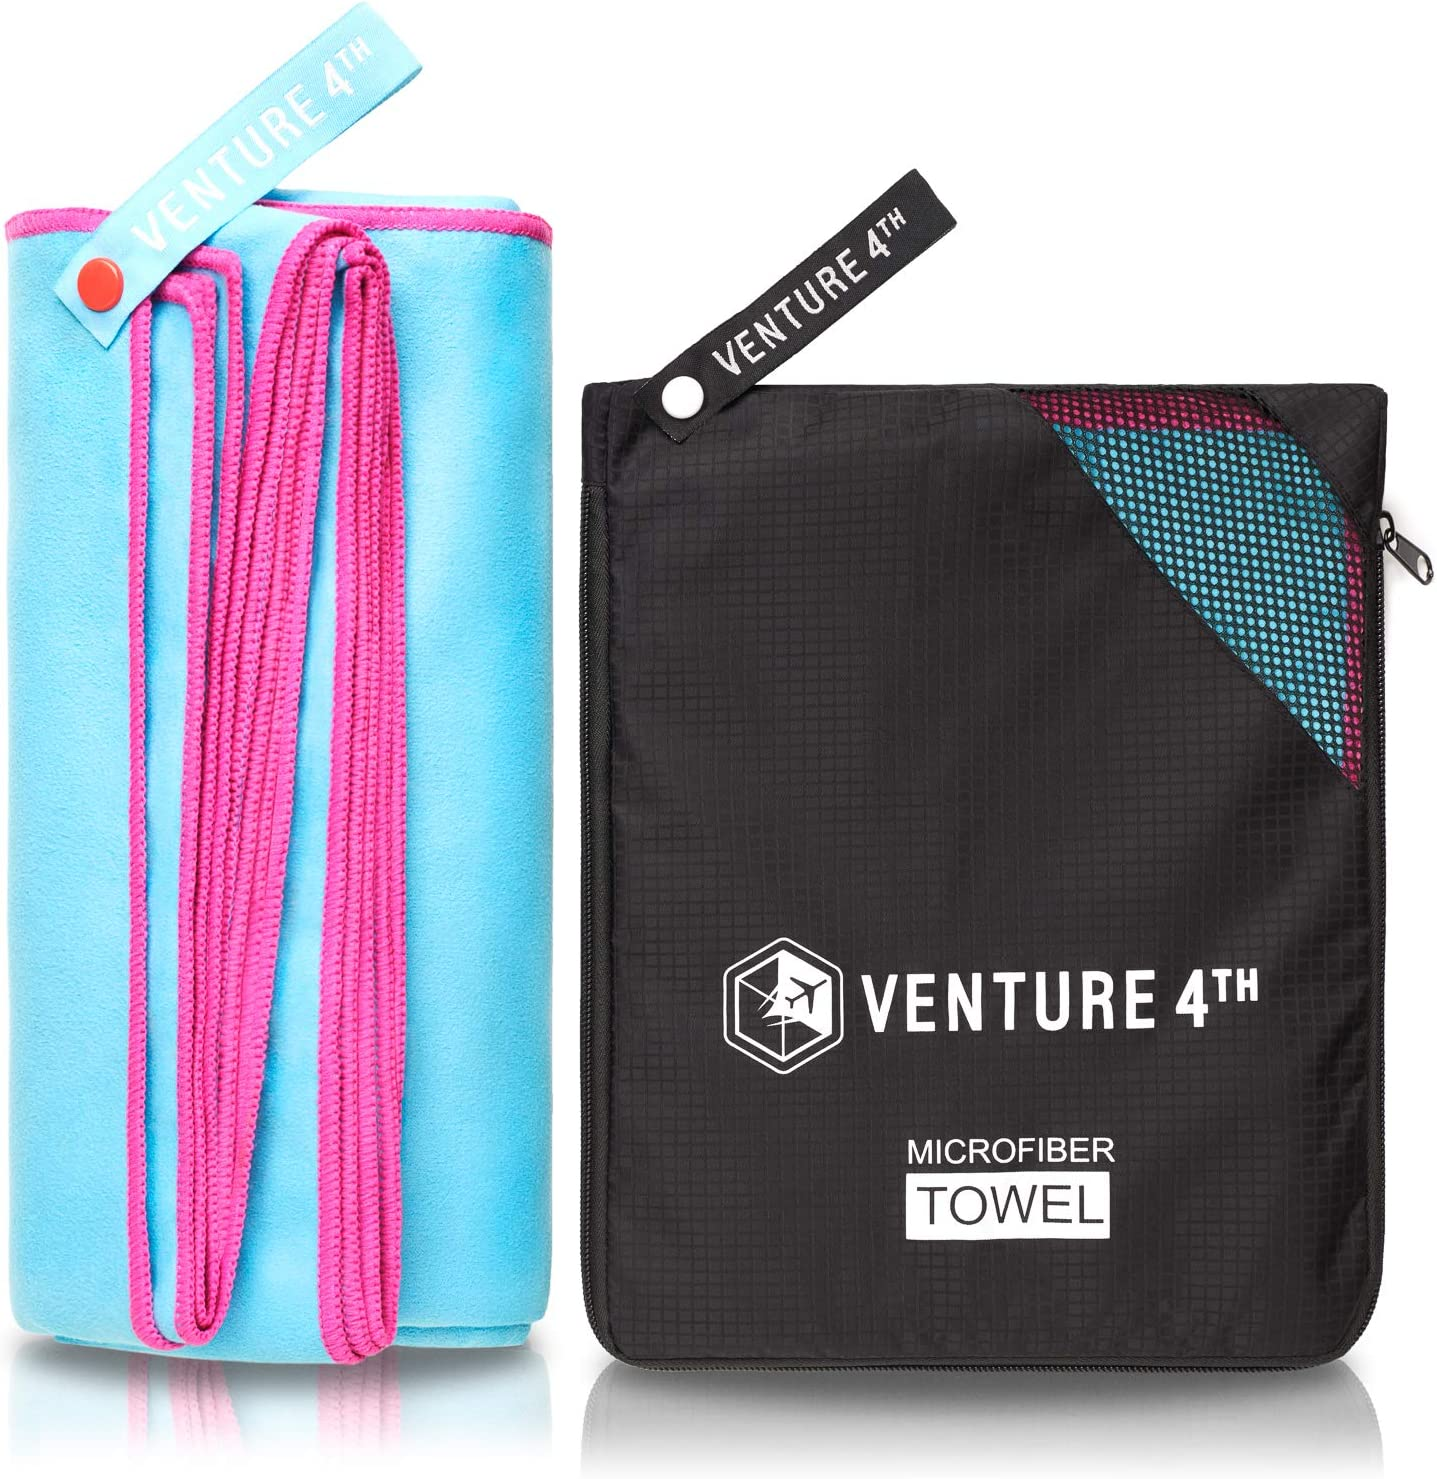 Camping Fast Drying and Lightweight Backpacking Swimmers VENTURE 4TH Micro Fiber Travel Towel Blue-Pink Medium Sports Towel: Packtowel for Gym Beach